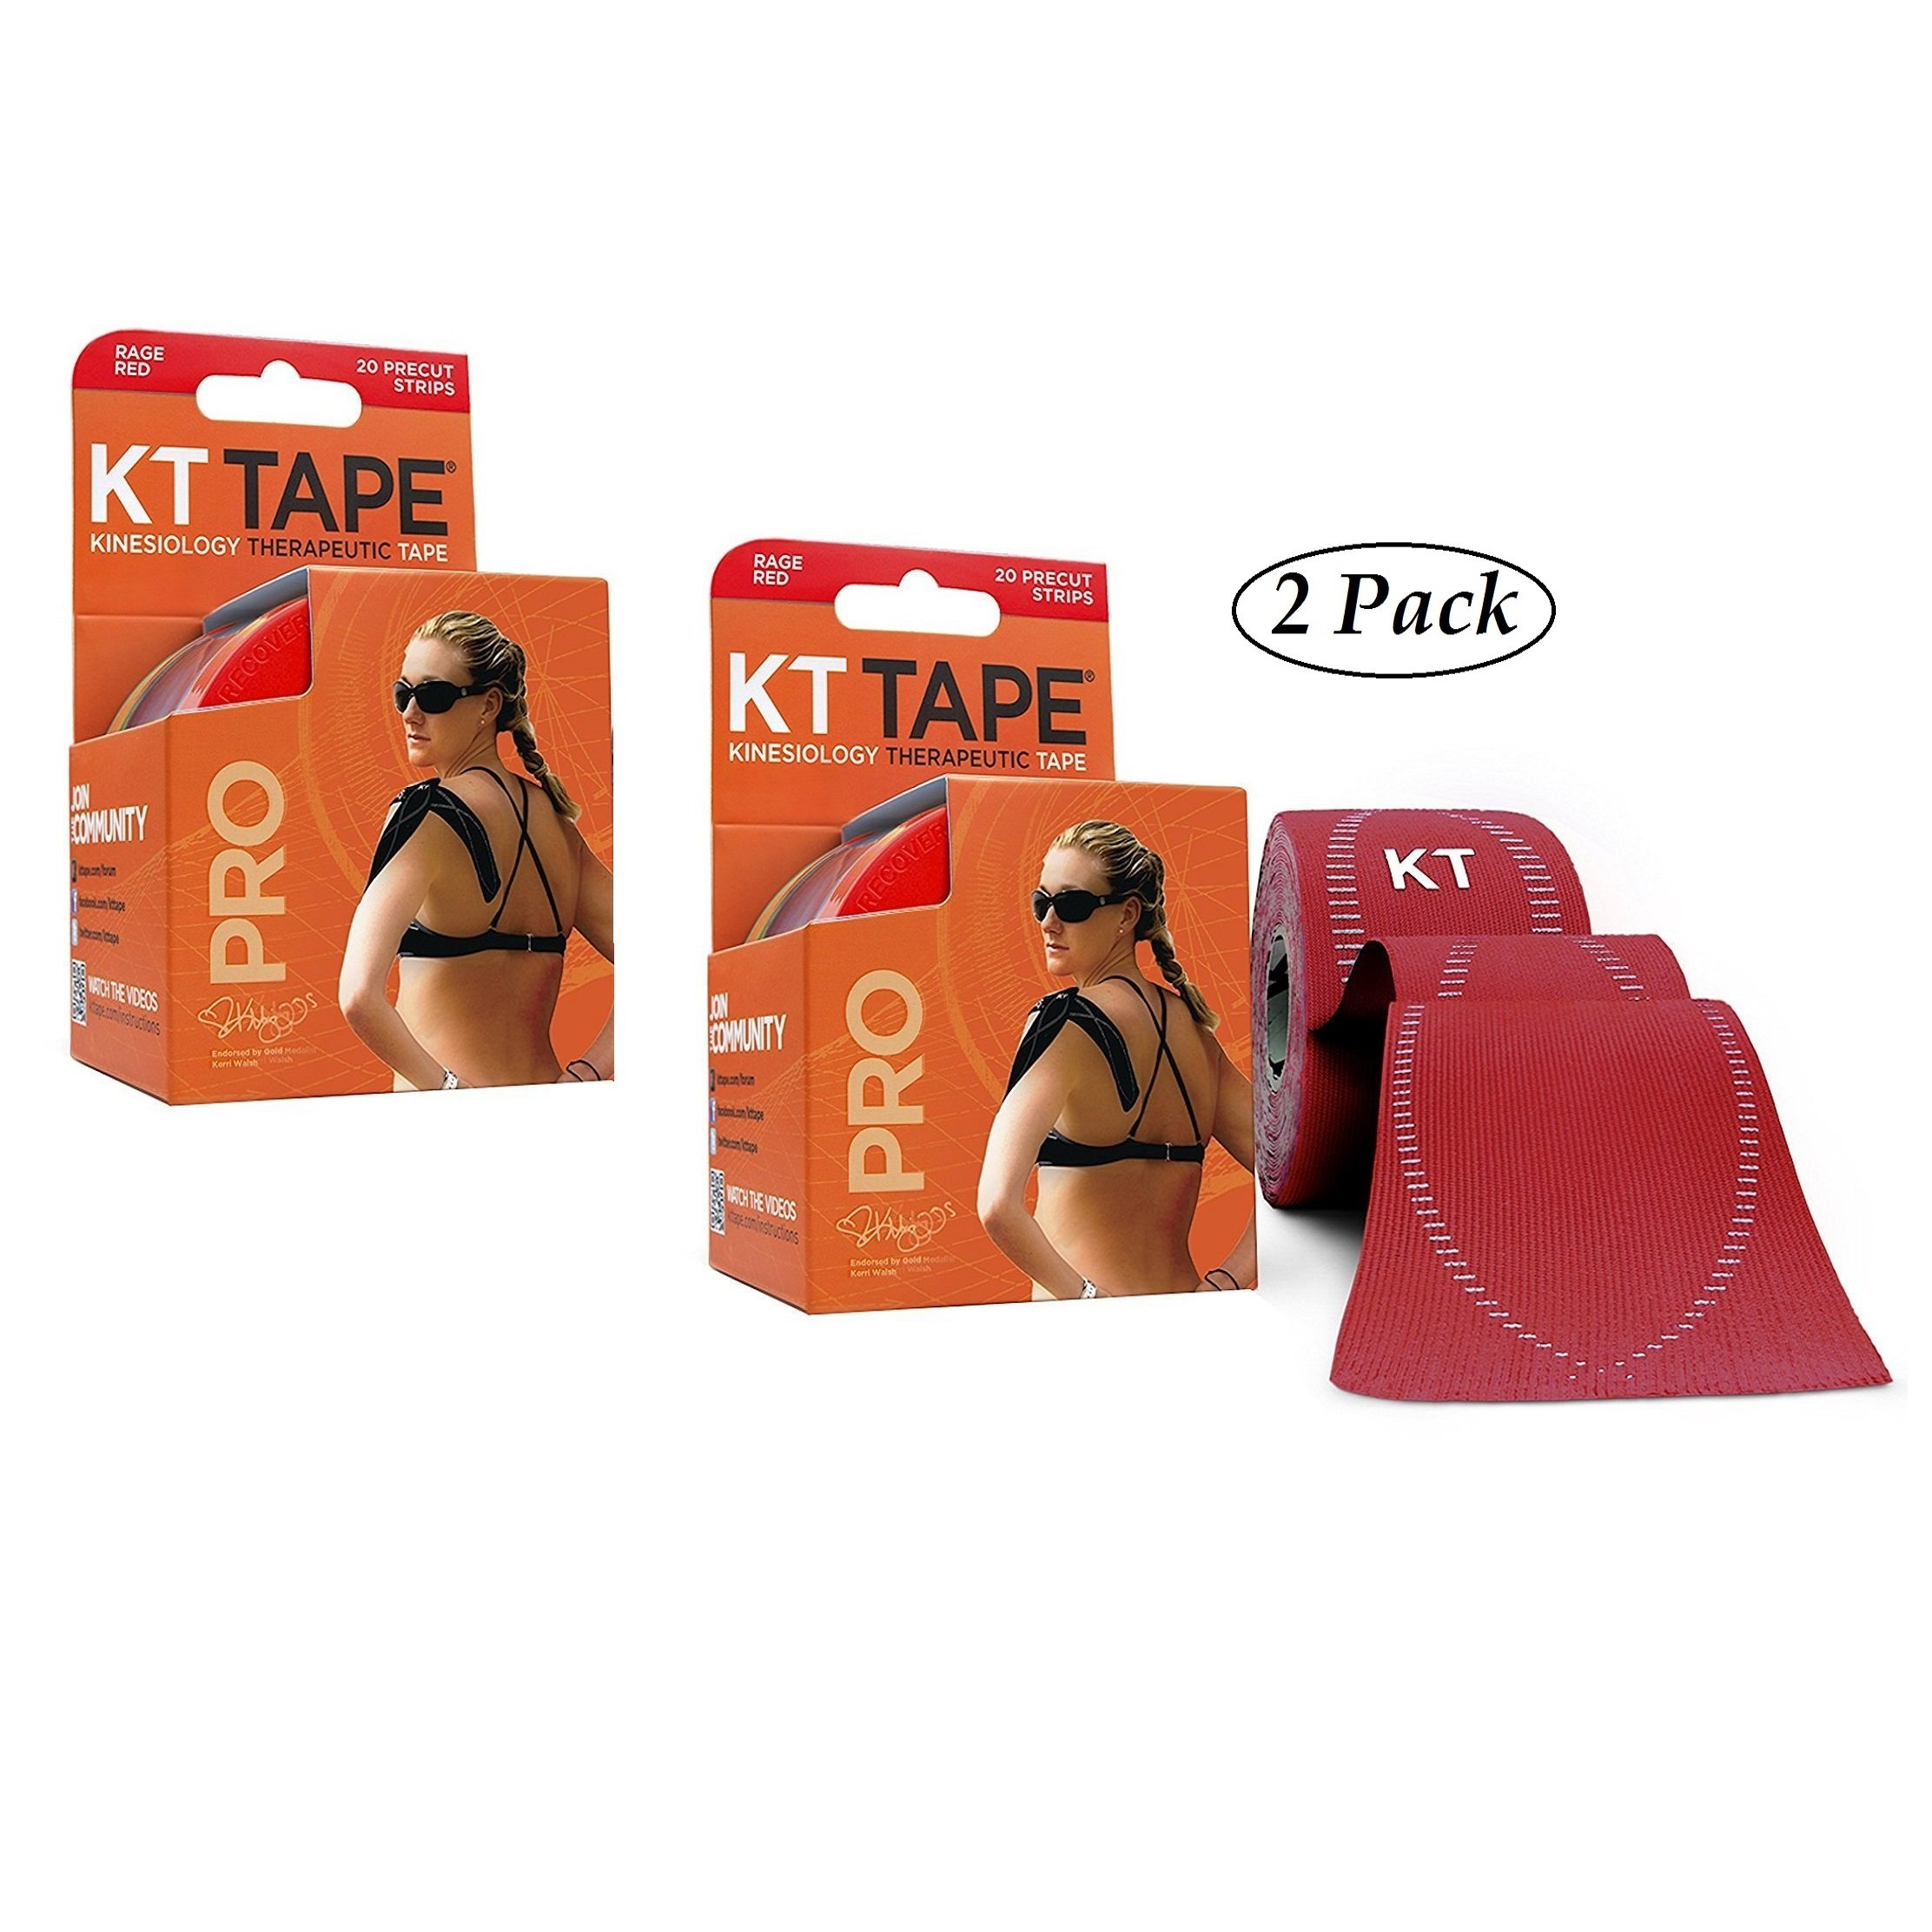 KT Tape Pro Kinesiology Therapeutic Sports Tape, 20 Pre-cut 10 inch Strips, Rage Red (2 Pack)